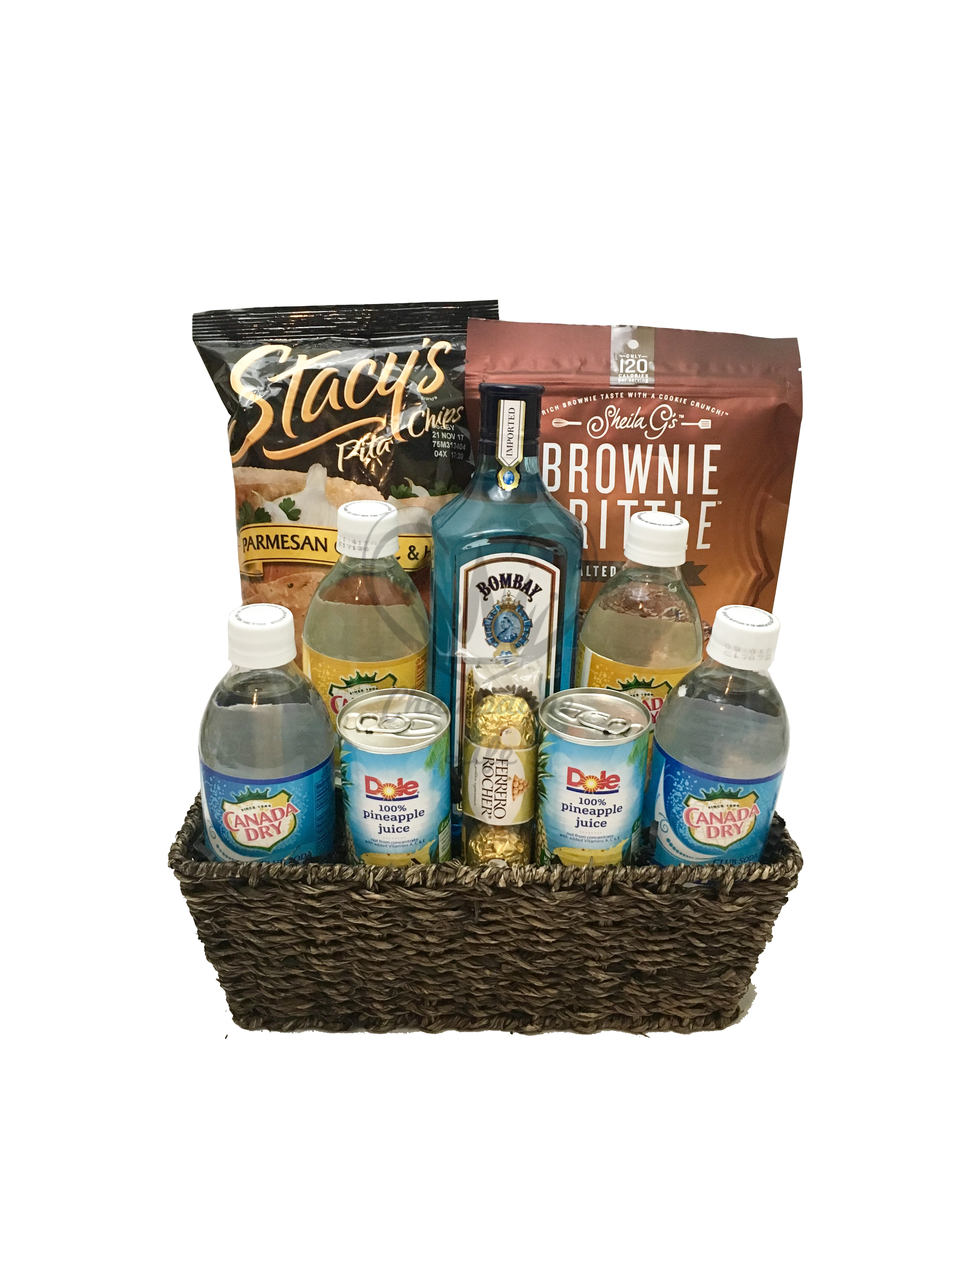 The Bombay Sapphire Gift Basket Is Available For Same Day Delivery In Las Vegas NV Martini Baskets Birthday And More